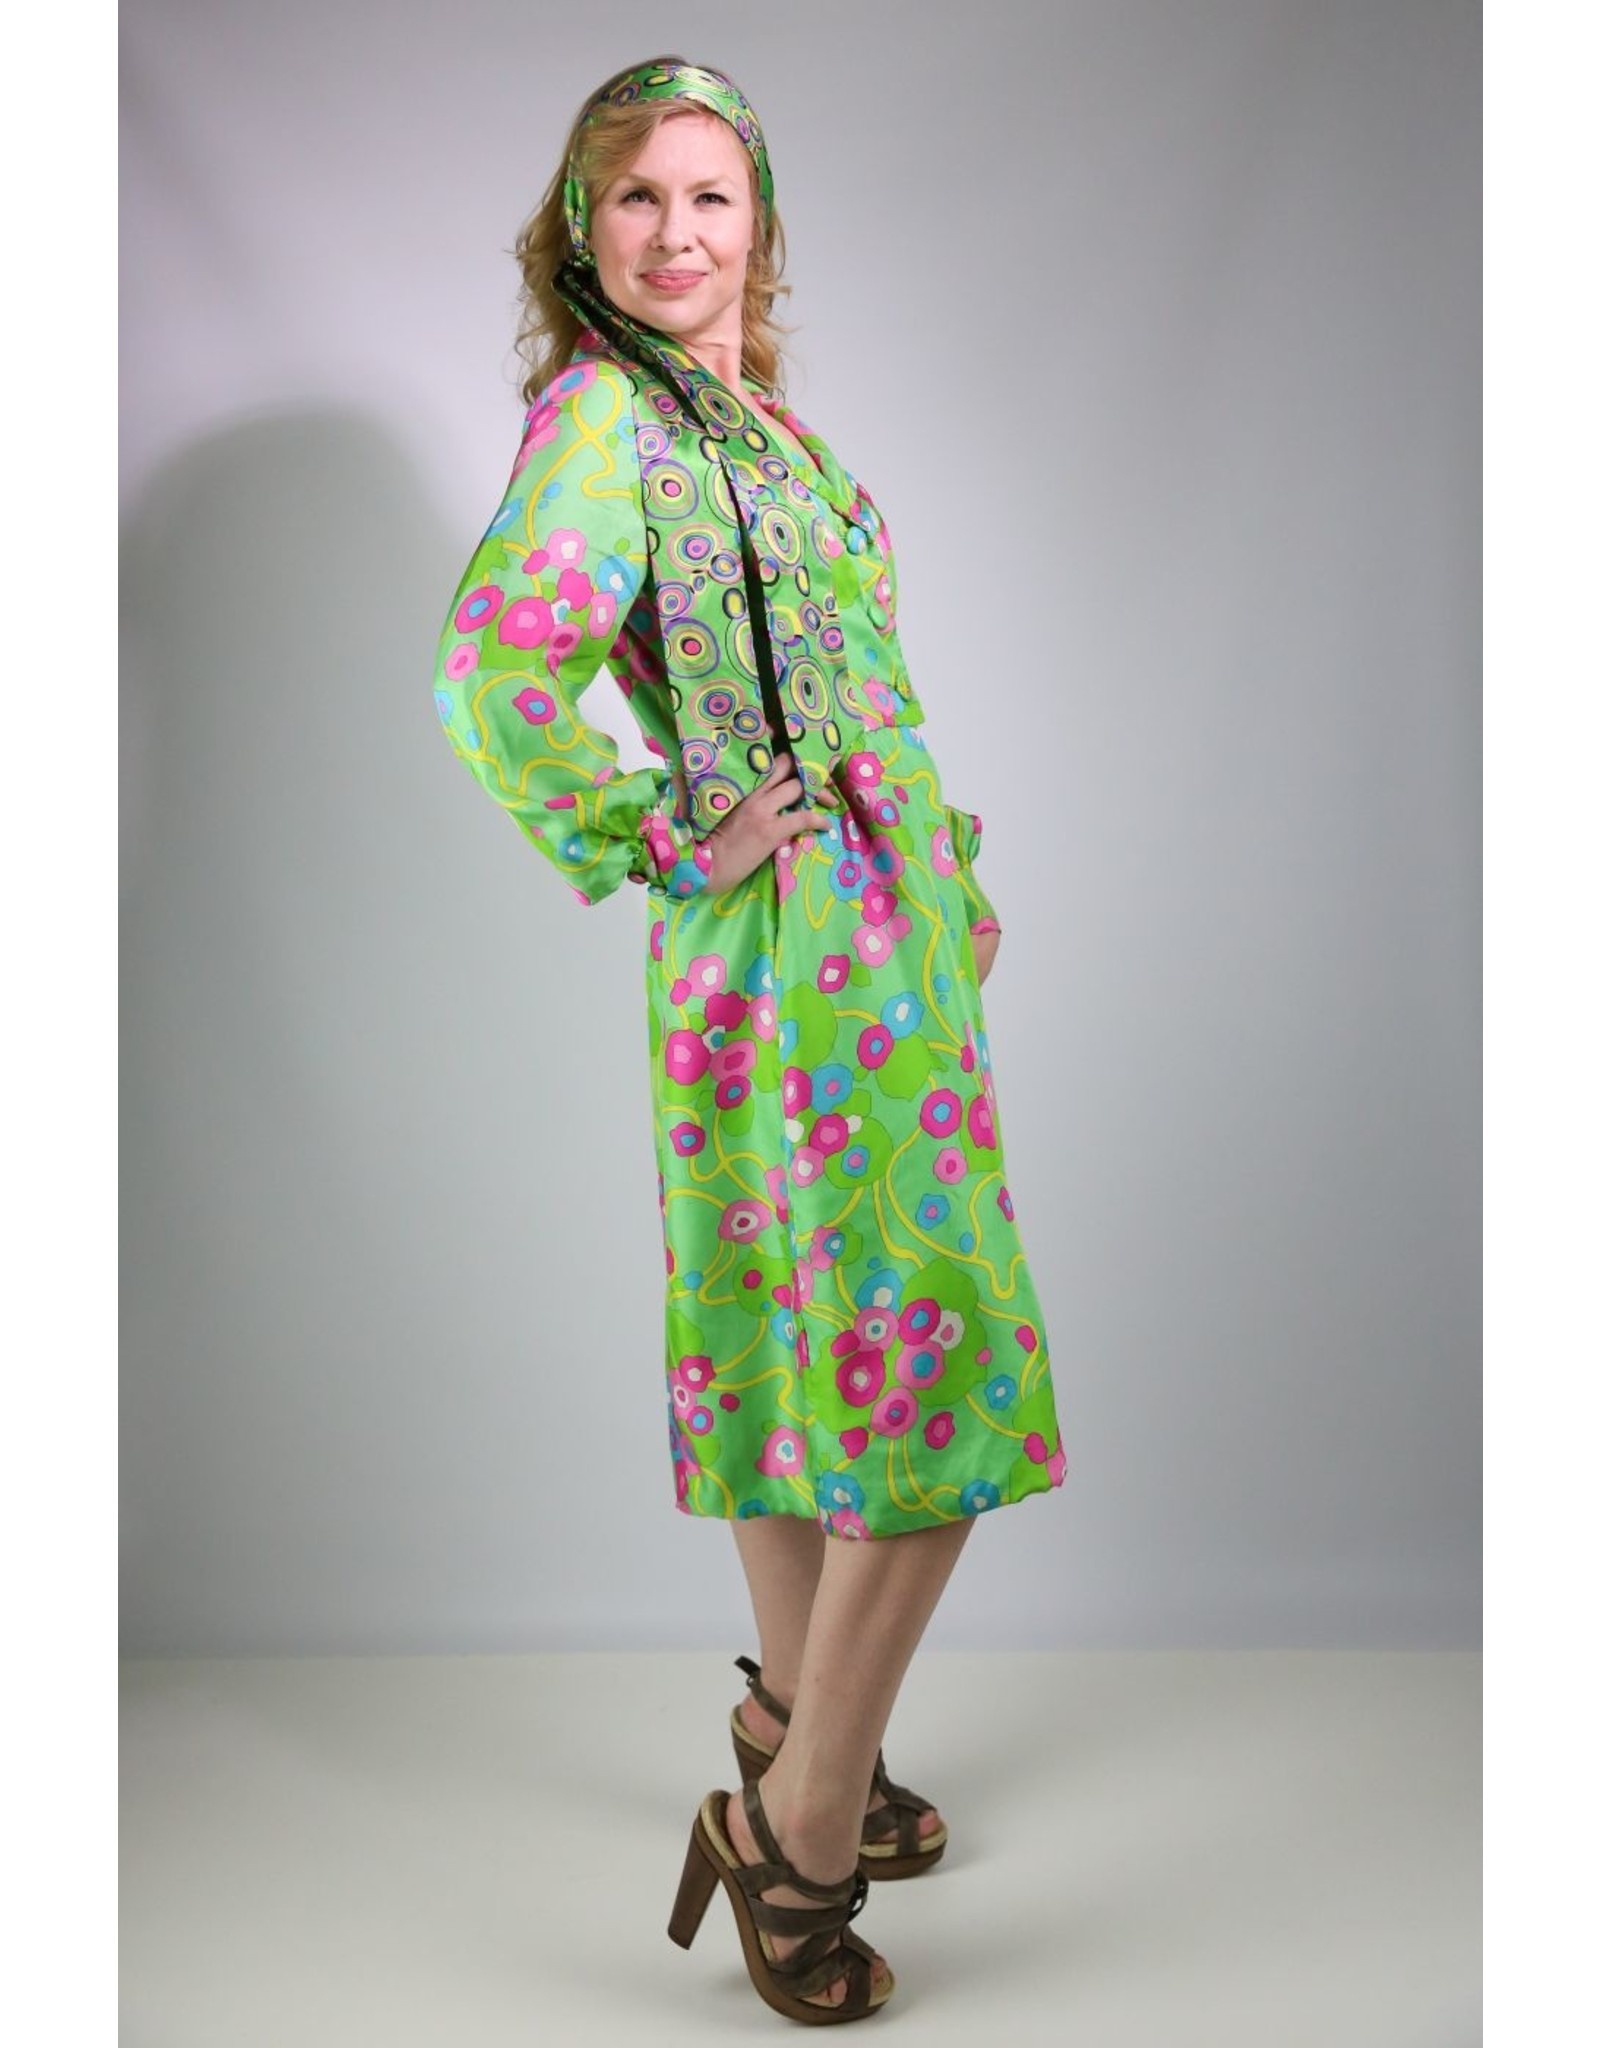 1960's Vibrant Green & Pink Floral Dress